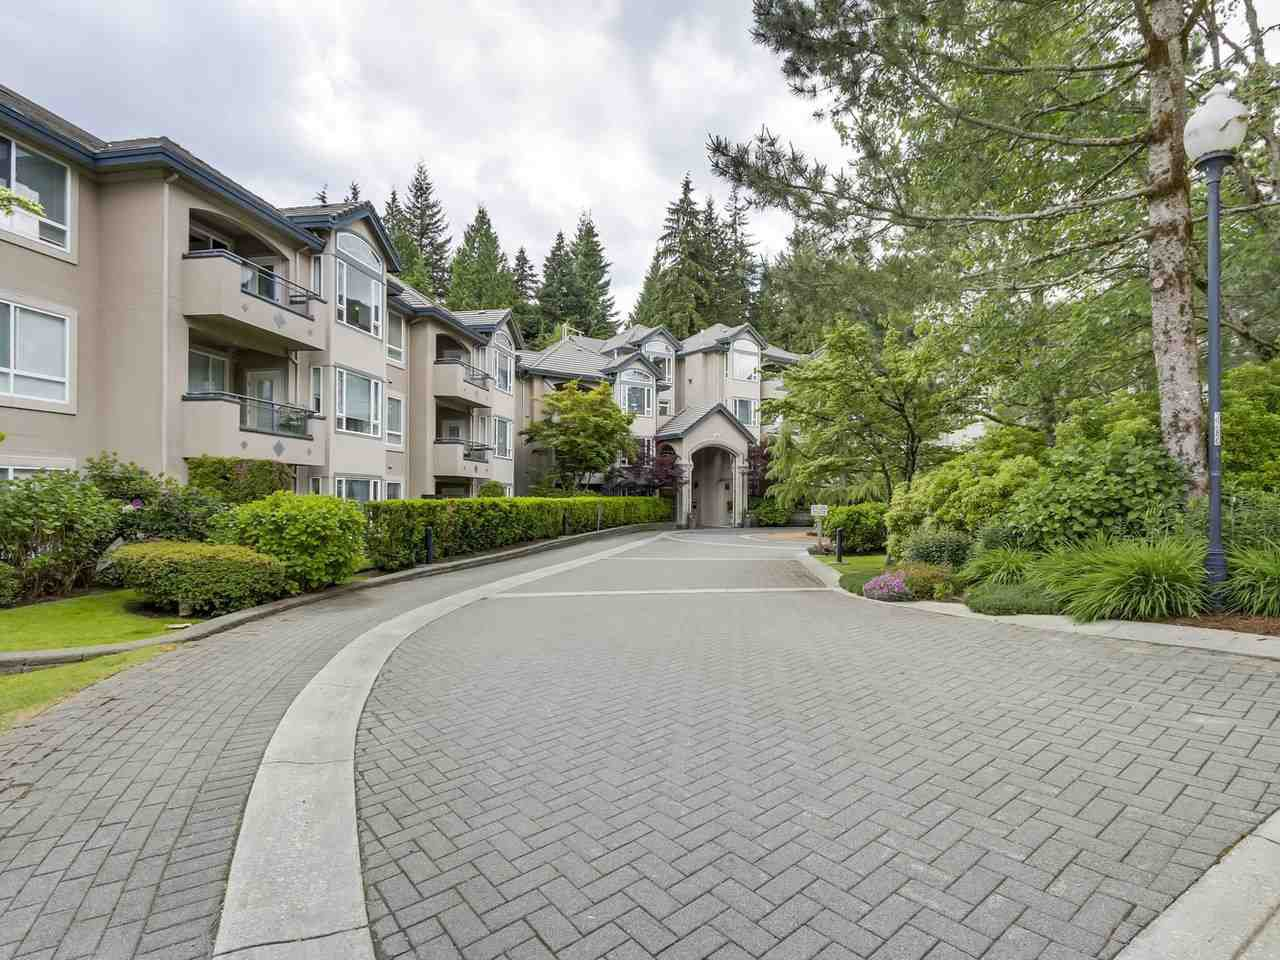 Main Photo: 303 3280 PLATEAU BOULEVARD in Coquitlam: Westwood Plateau Condo for sale : MLS®# R2275918